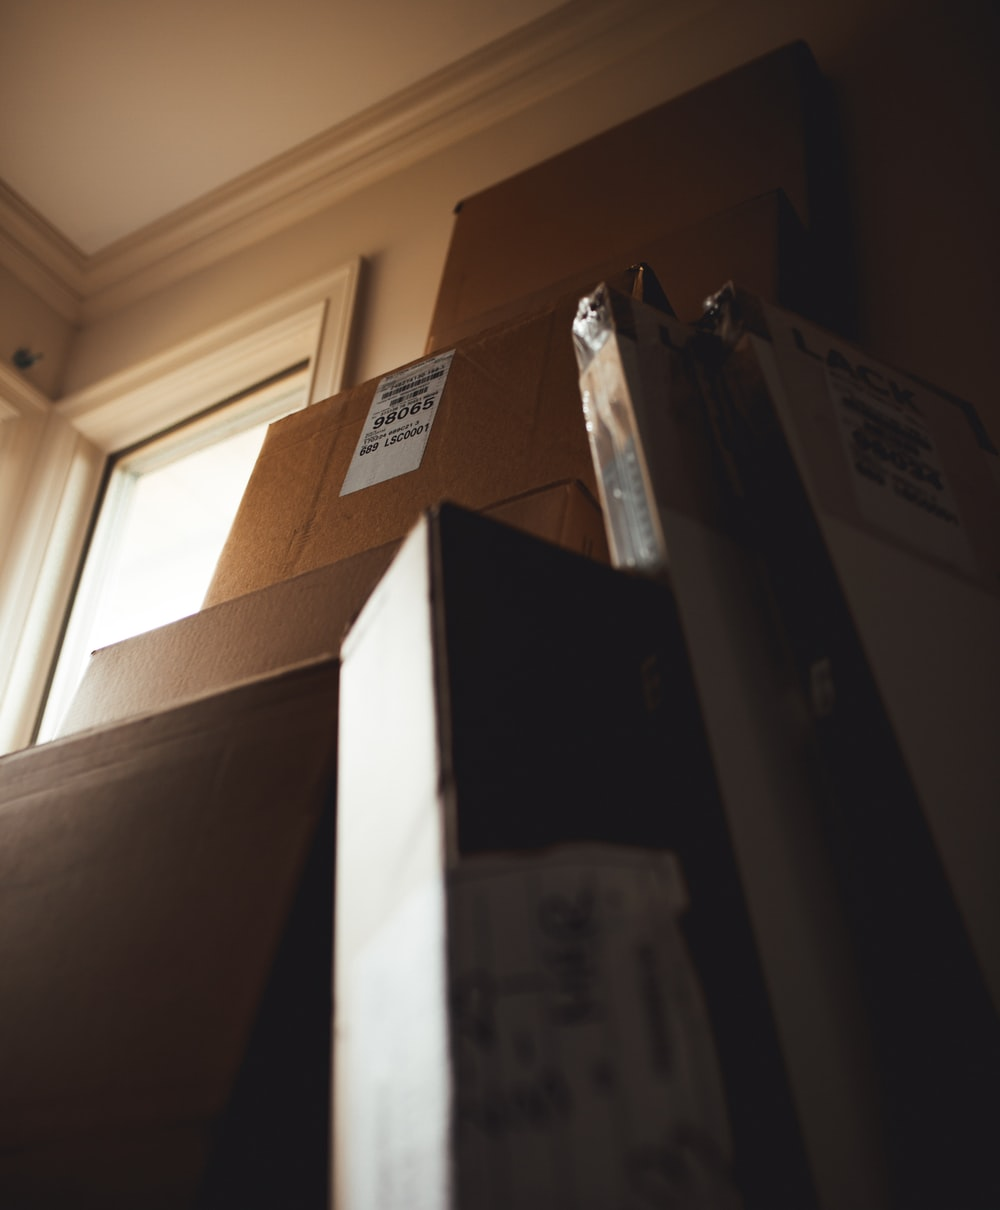 boxes leaning on cardboard box